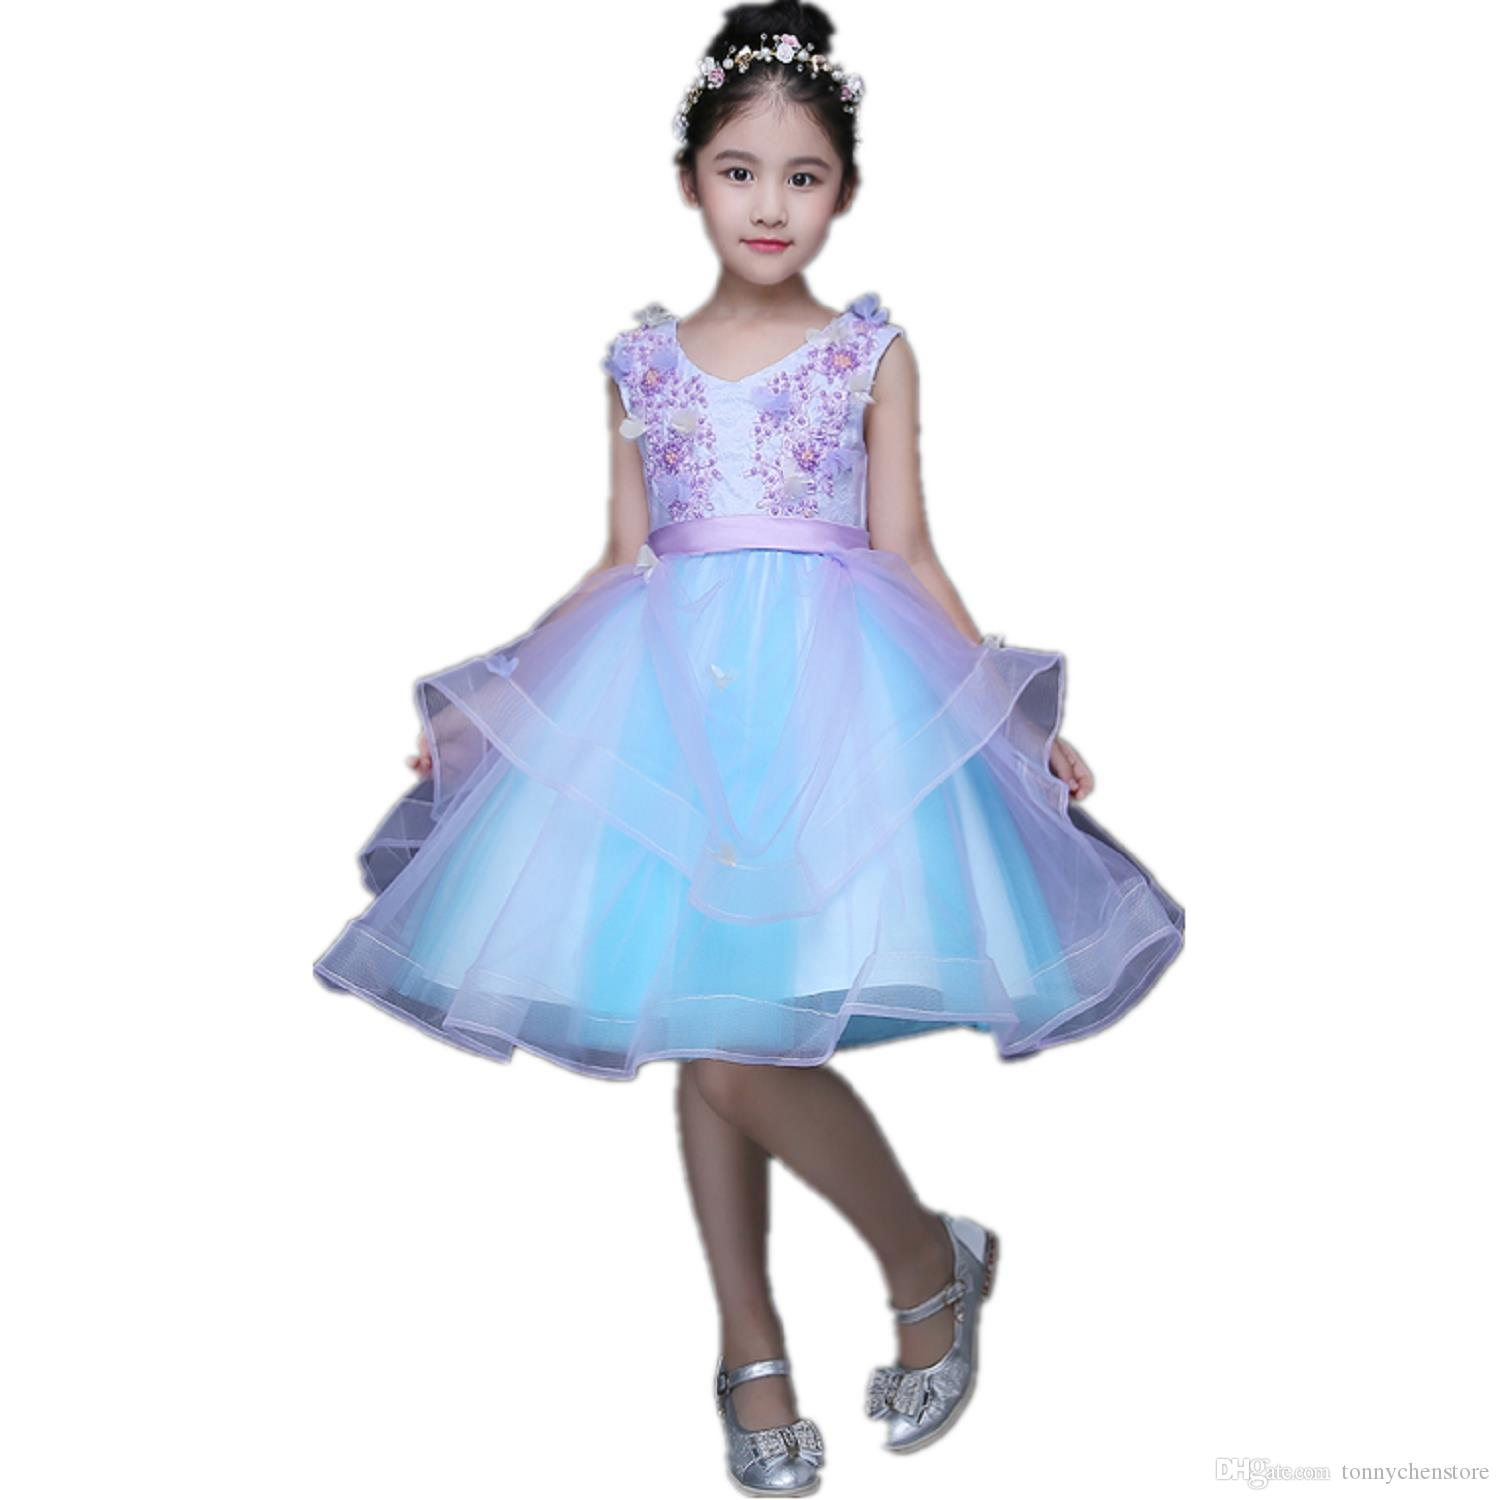 2018 Fashion Blue Girl Dress Sleeveless Queen Dress Tulle Sequin ...